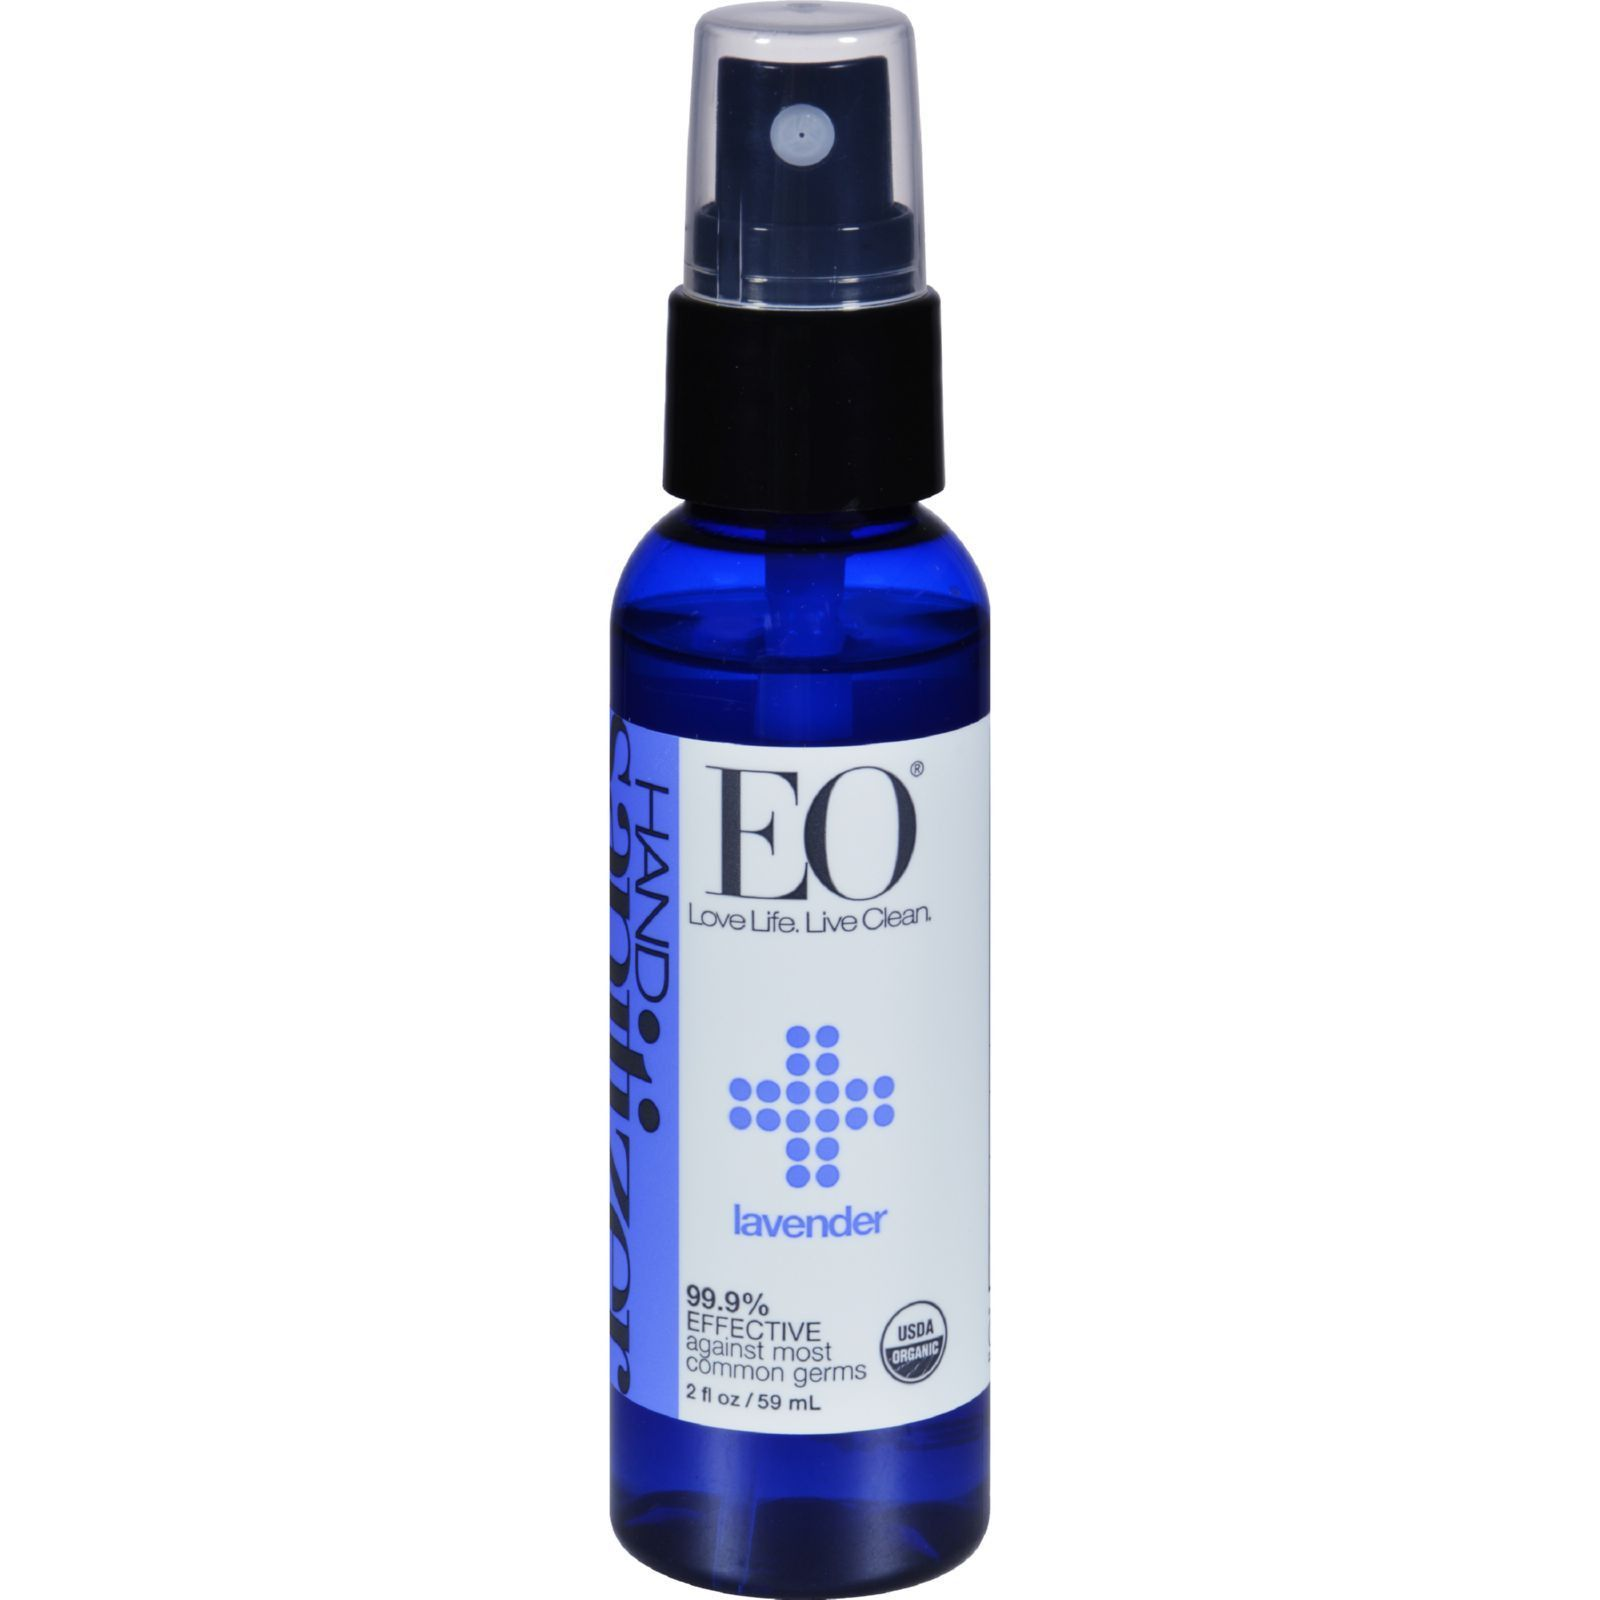 Eo Products Hand Sanitizer Spray Lavender 2 Fl Oz Case Of 6